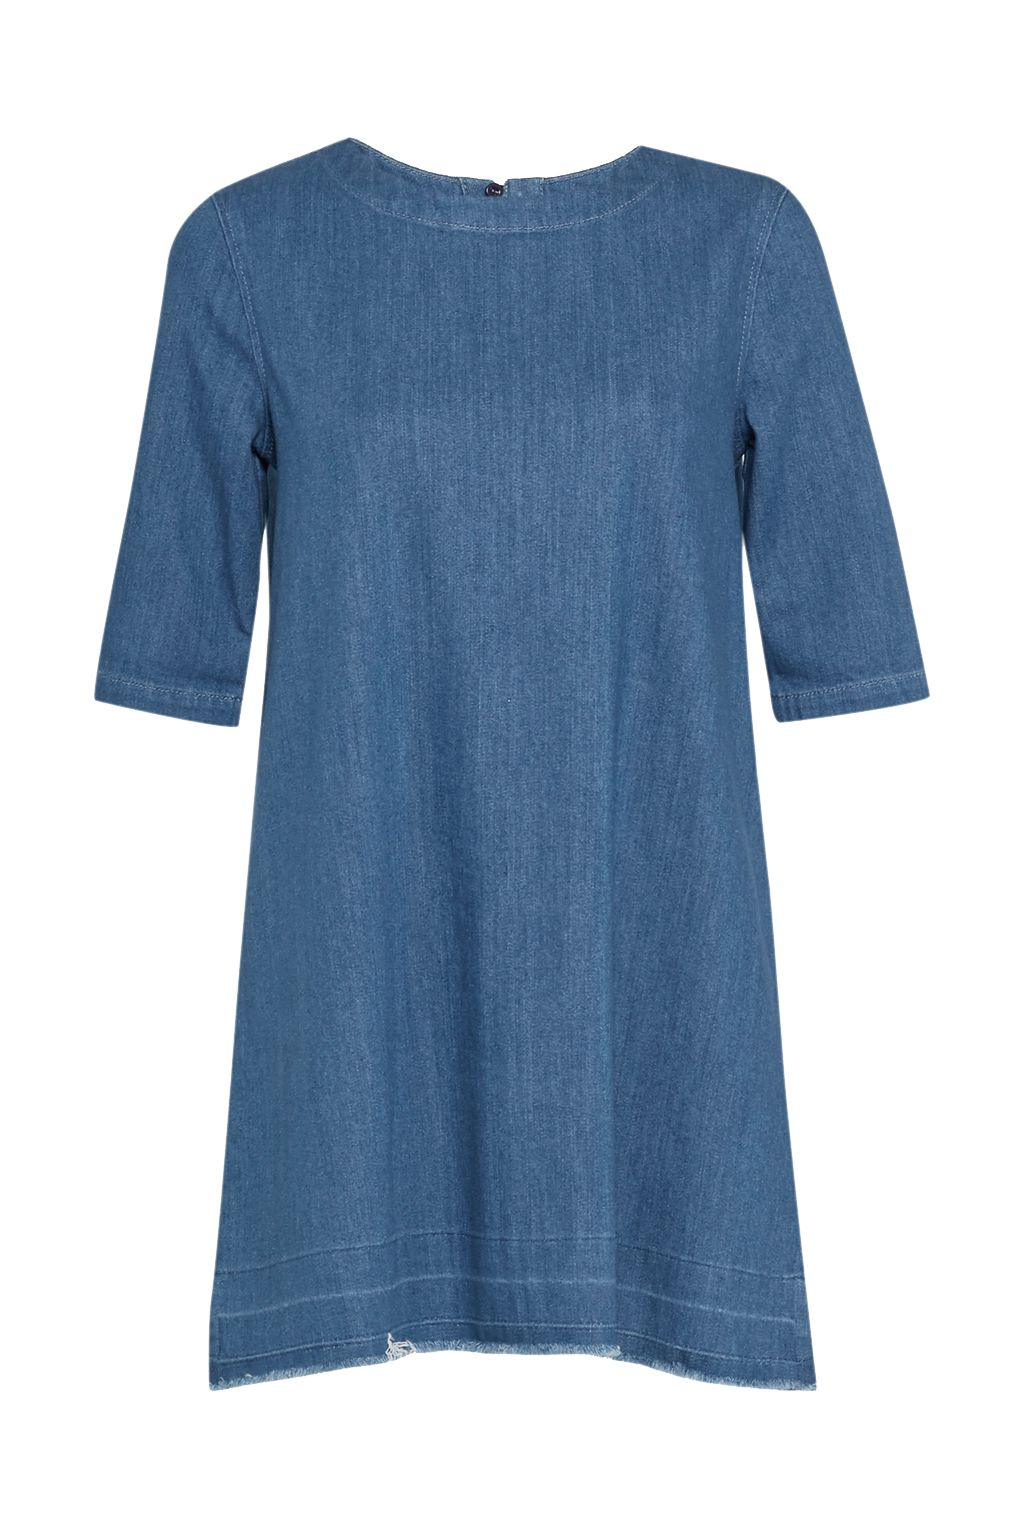 French Connection Evelyn Denim T-Shirt Dress, Blue